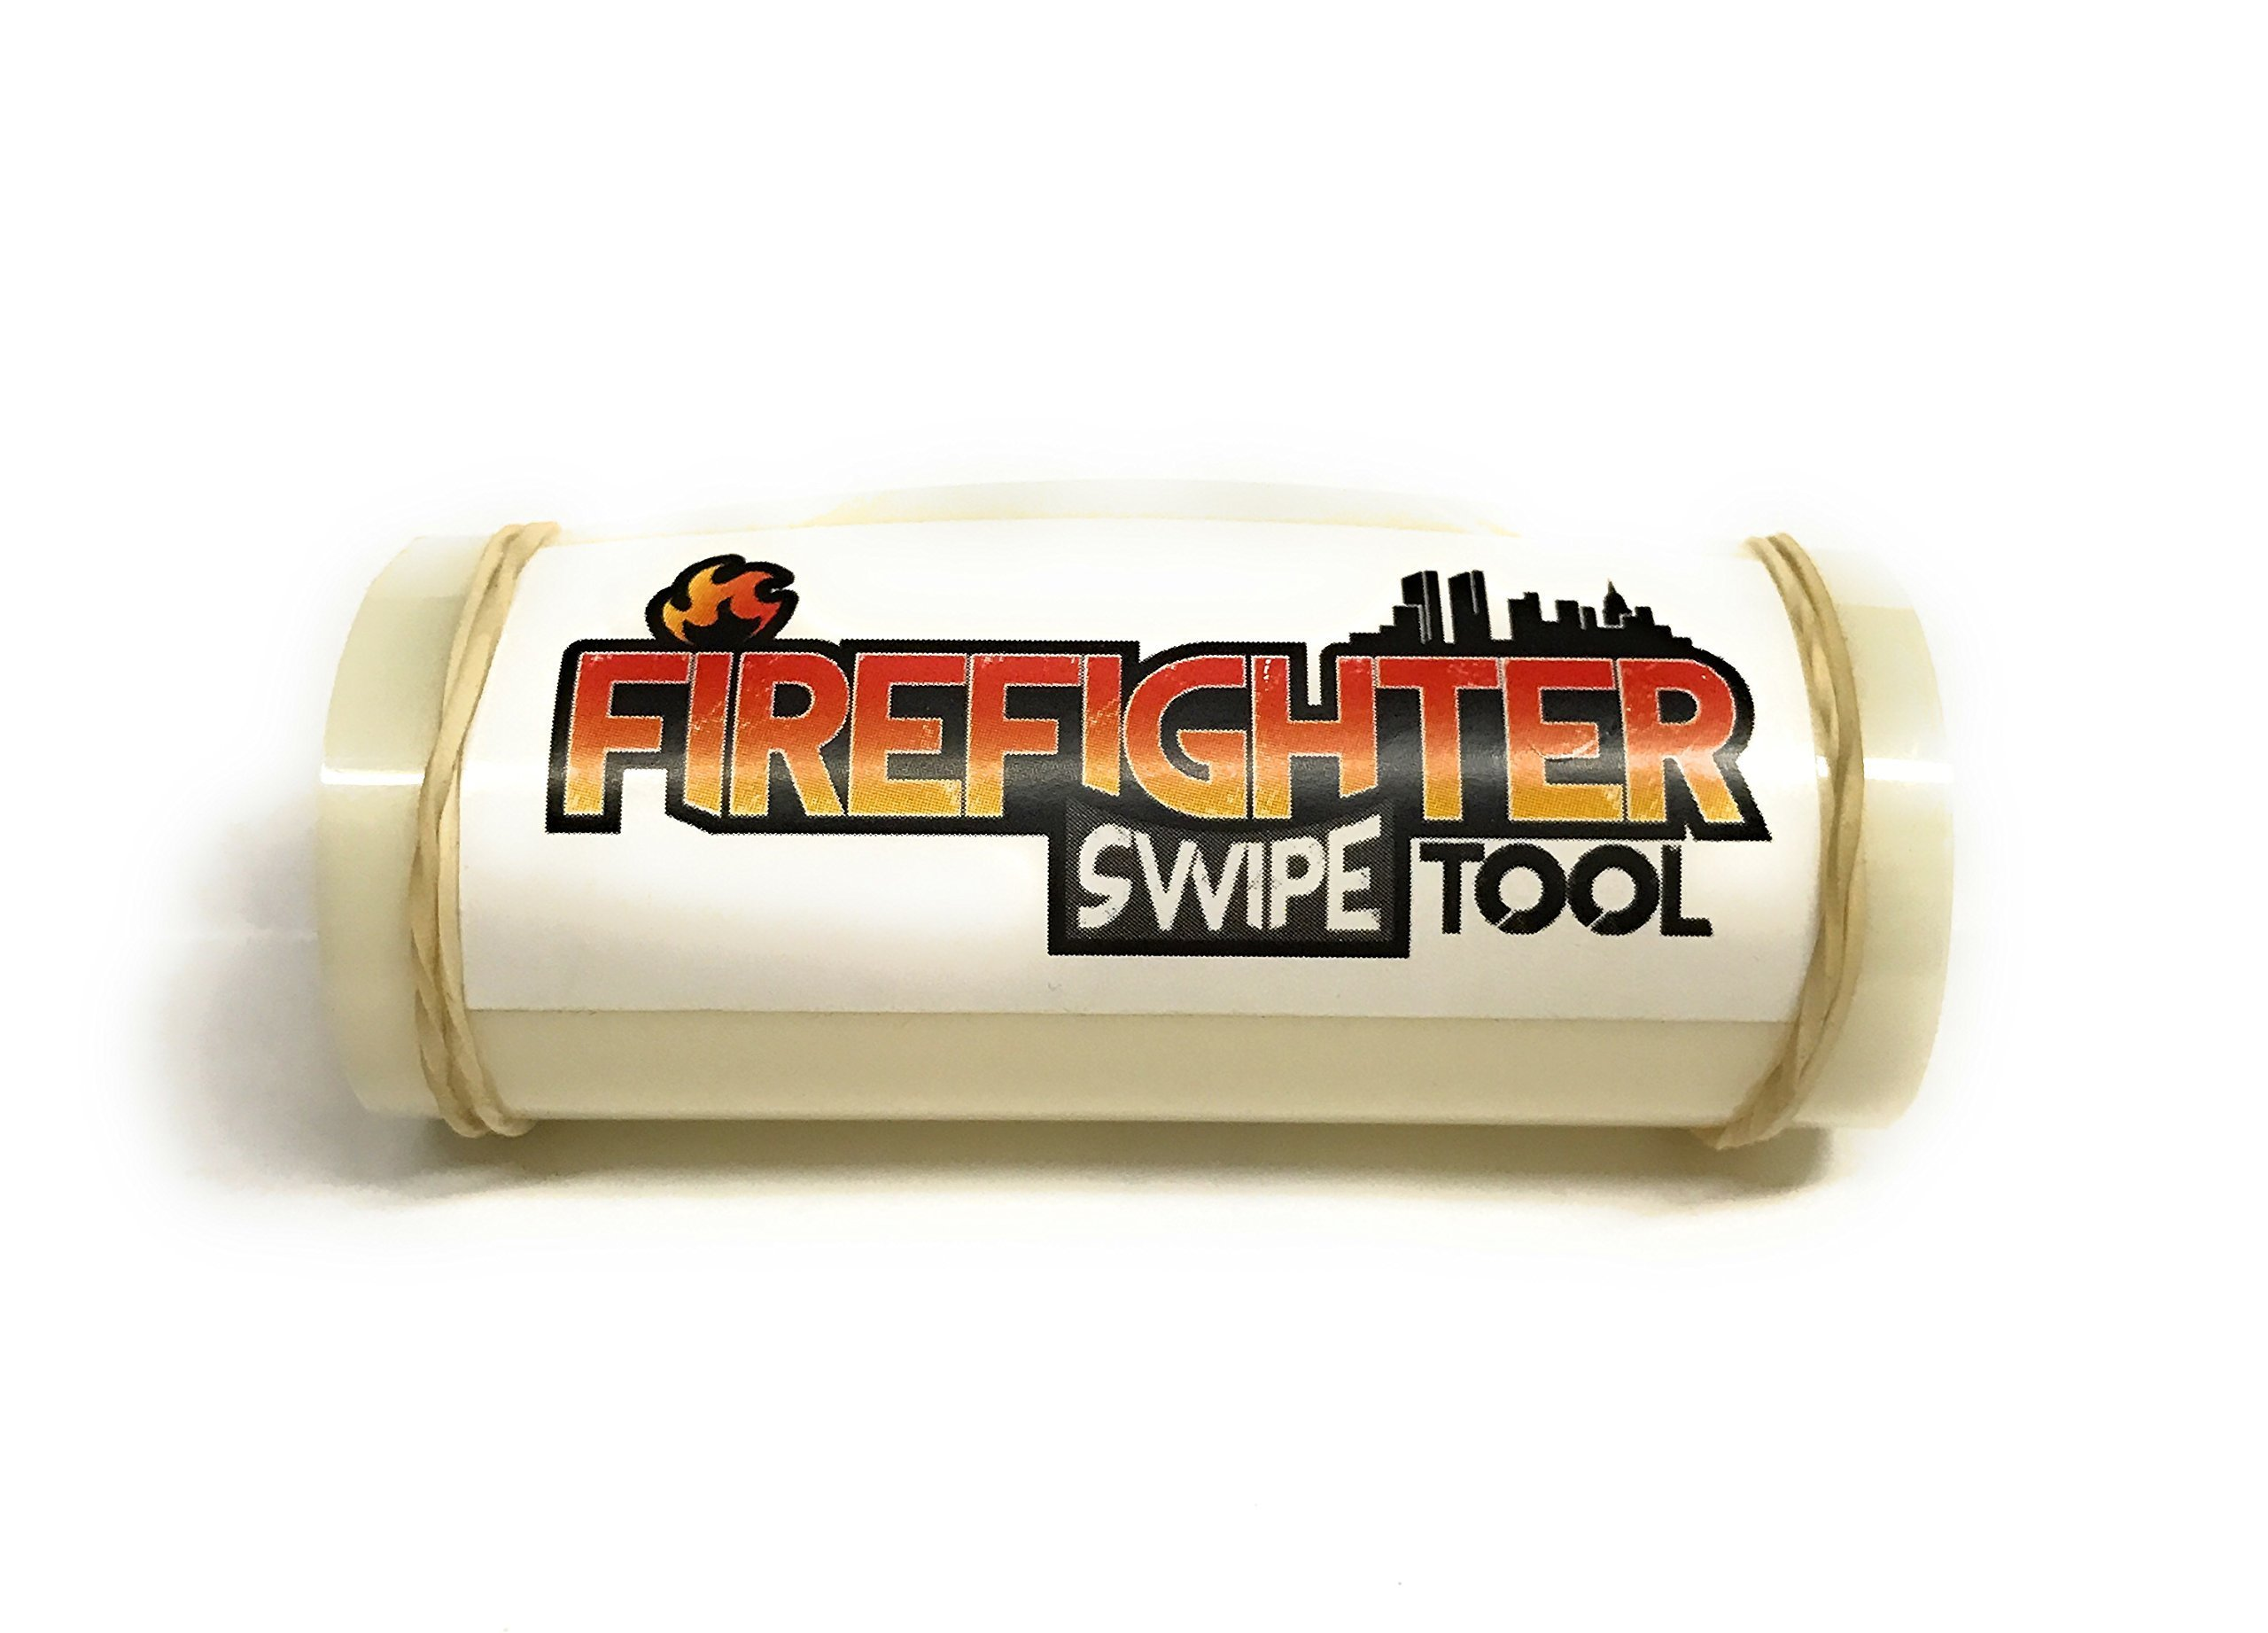 Firefighter Swipe Tool 3 Pack - Fire, EMS and Police by Firefighter Swipe Tool